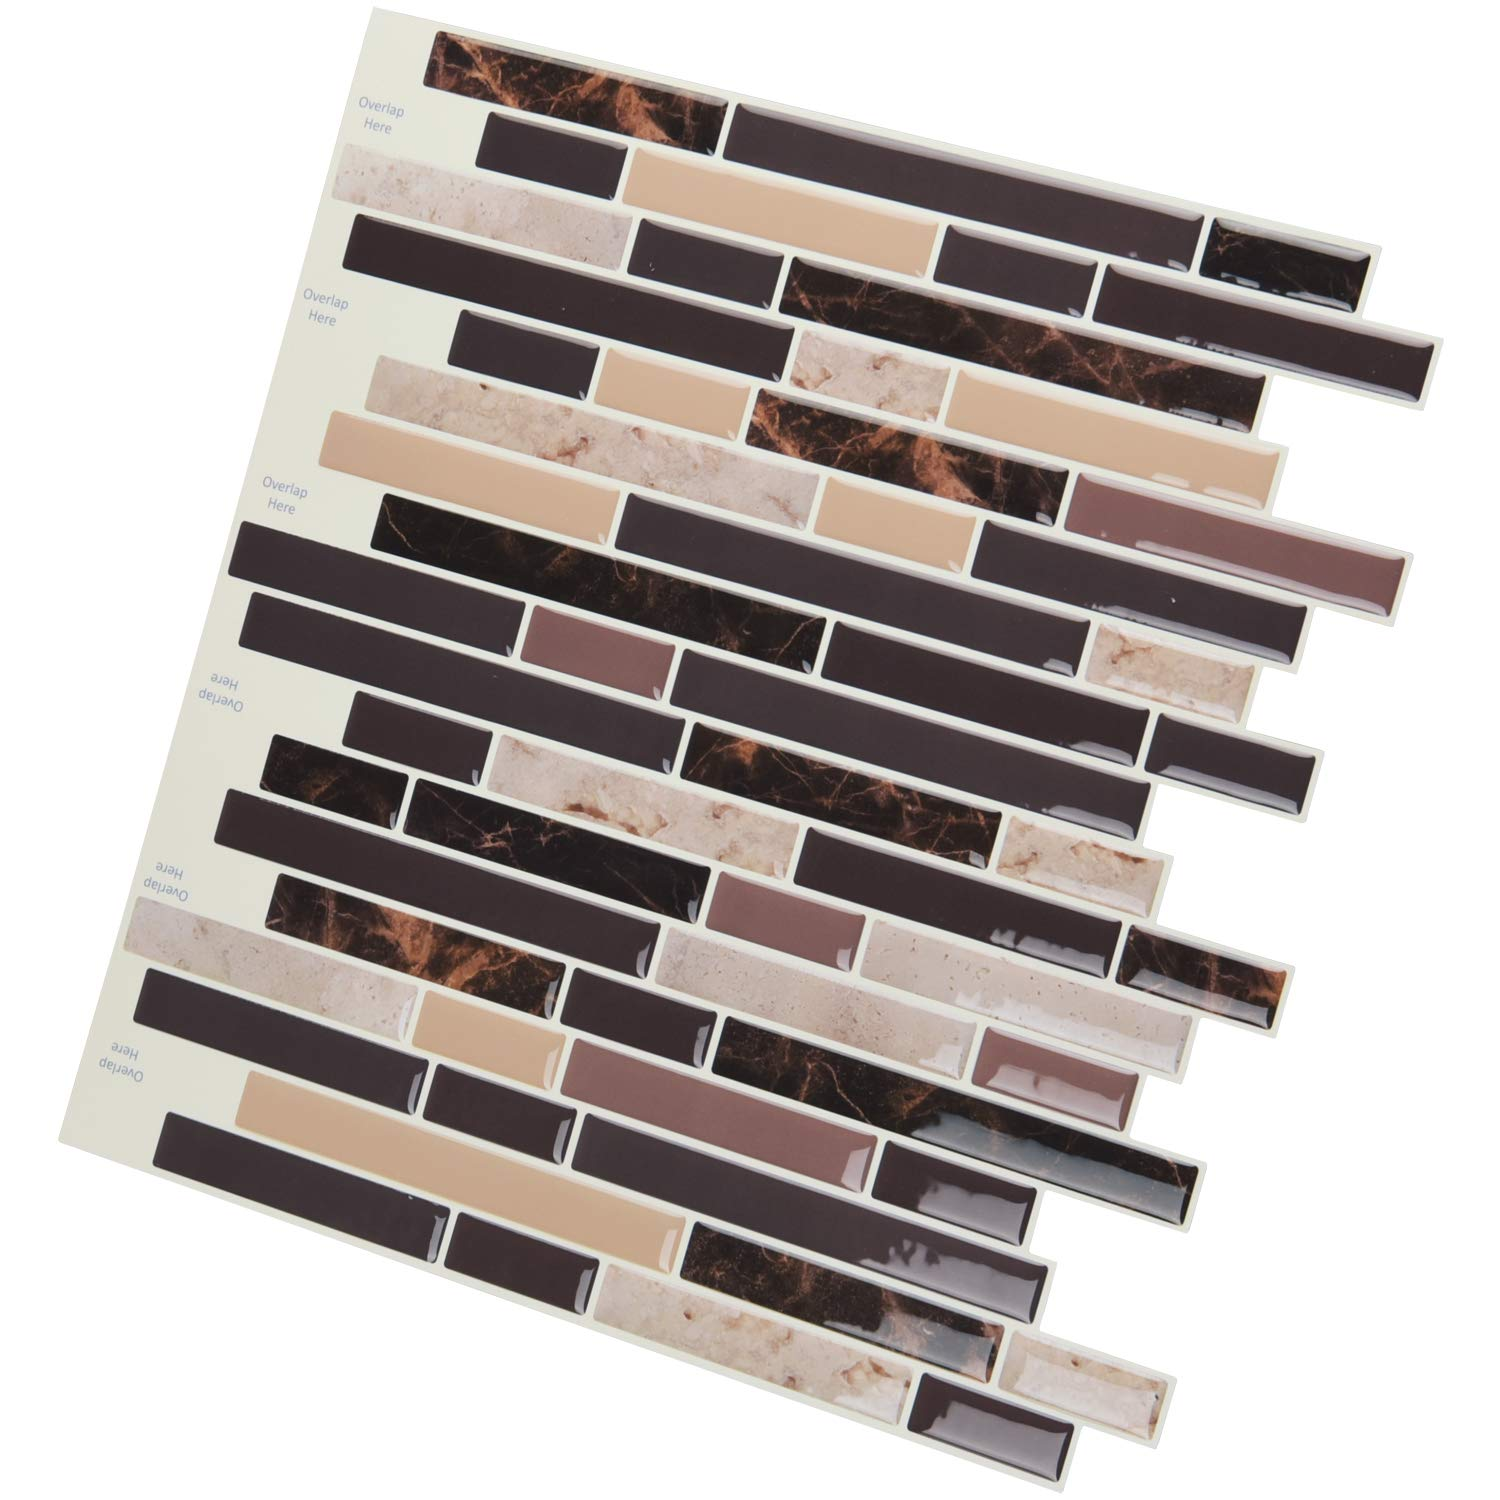 A17039 - Peel and Stick on Wall Tiles for Kitchen Backsplash, Set of 10